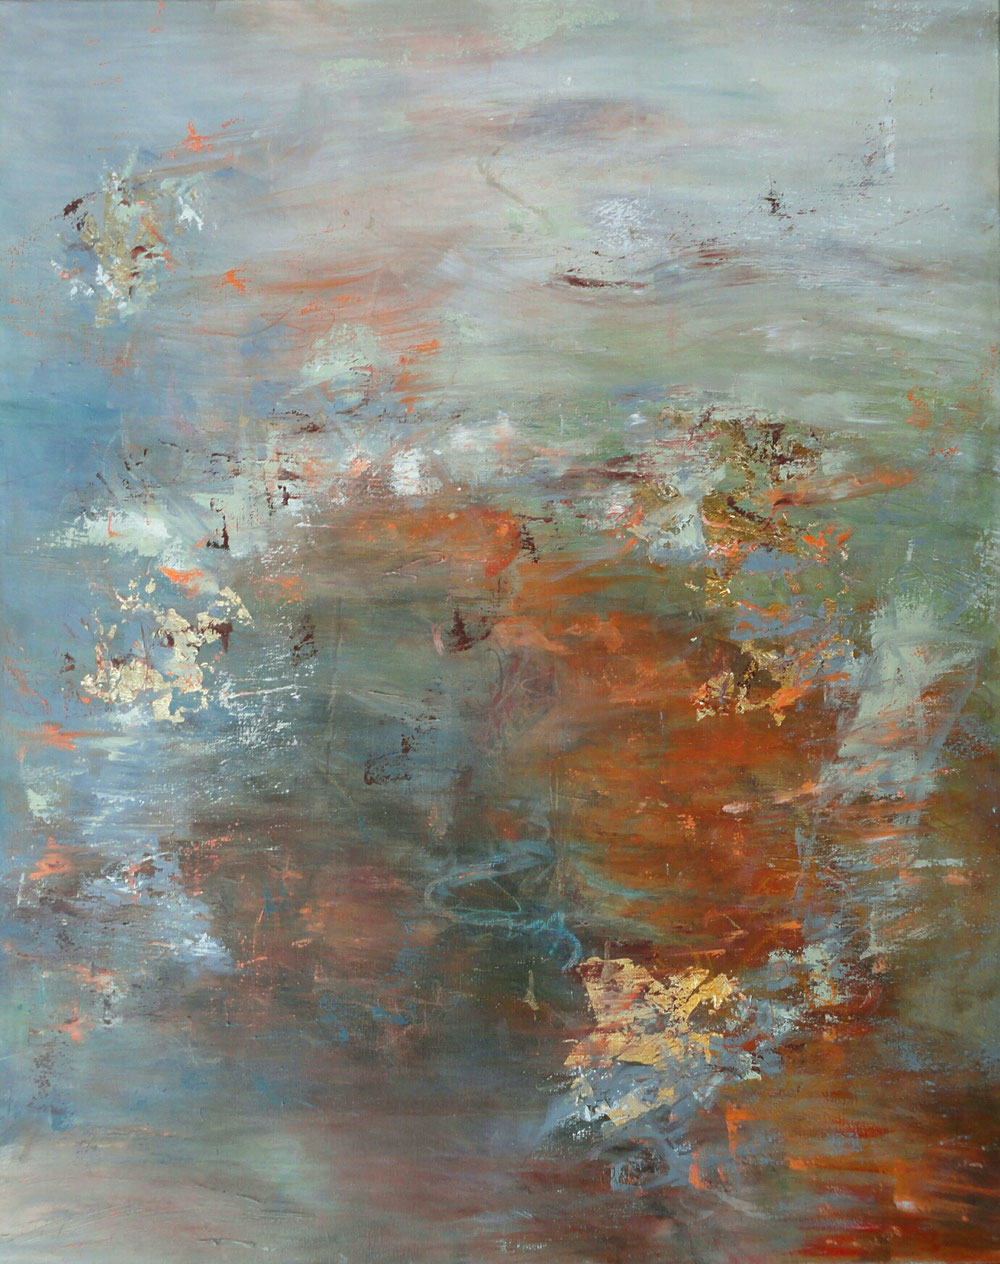 Reflections on the sea, 100 x 80, mixed media on canvas